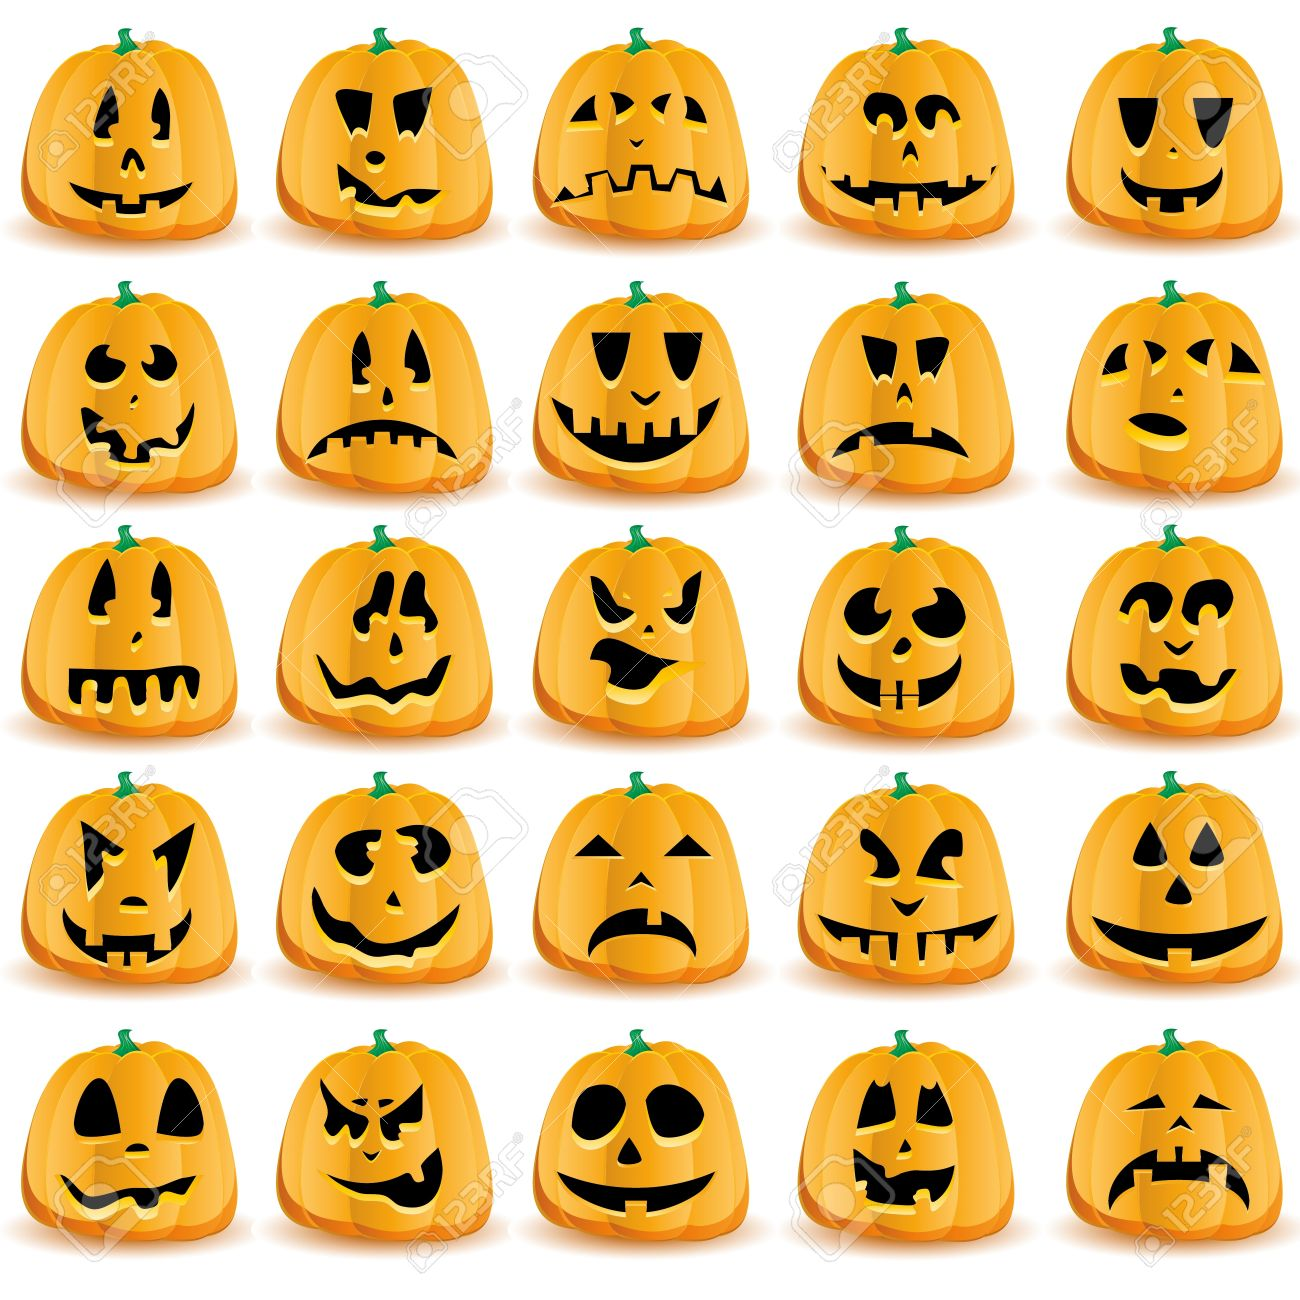 halloween pumpkins with mouths eyes and noses for jack o lantern